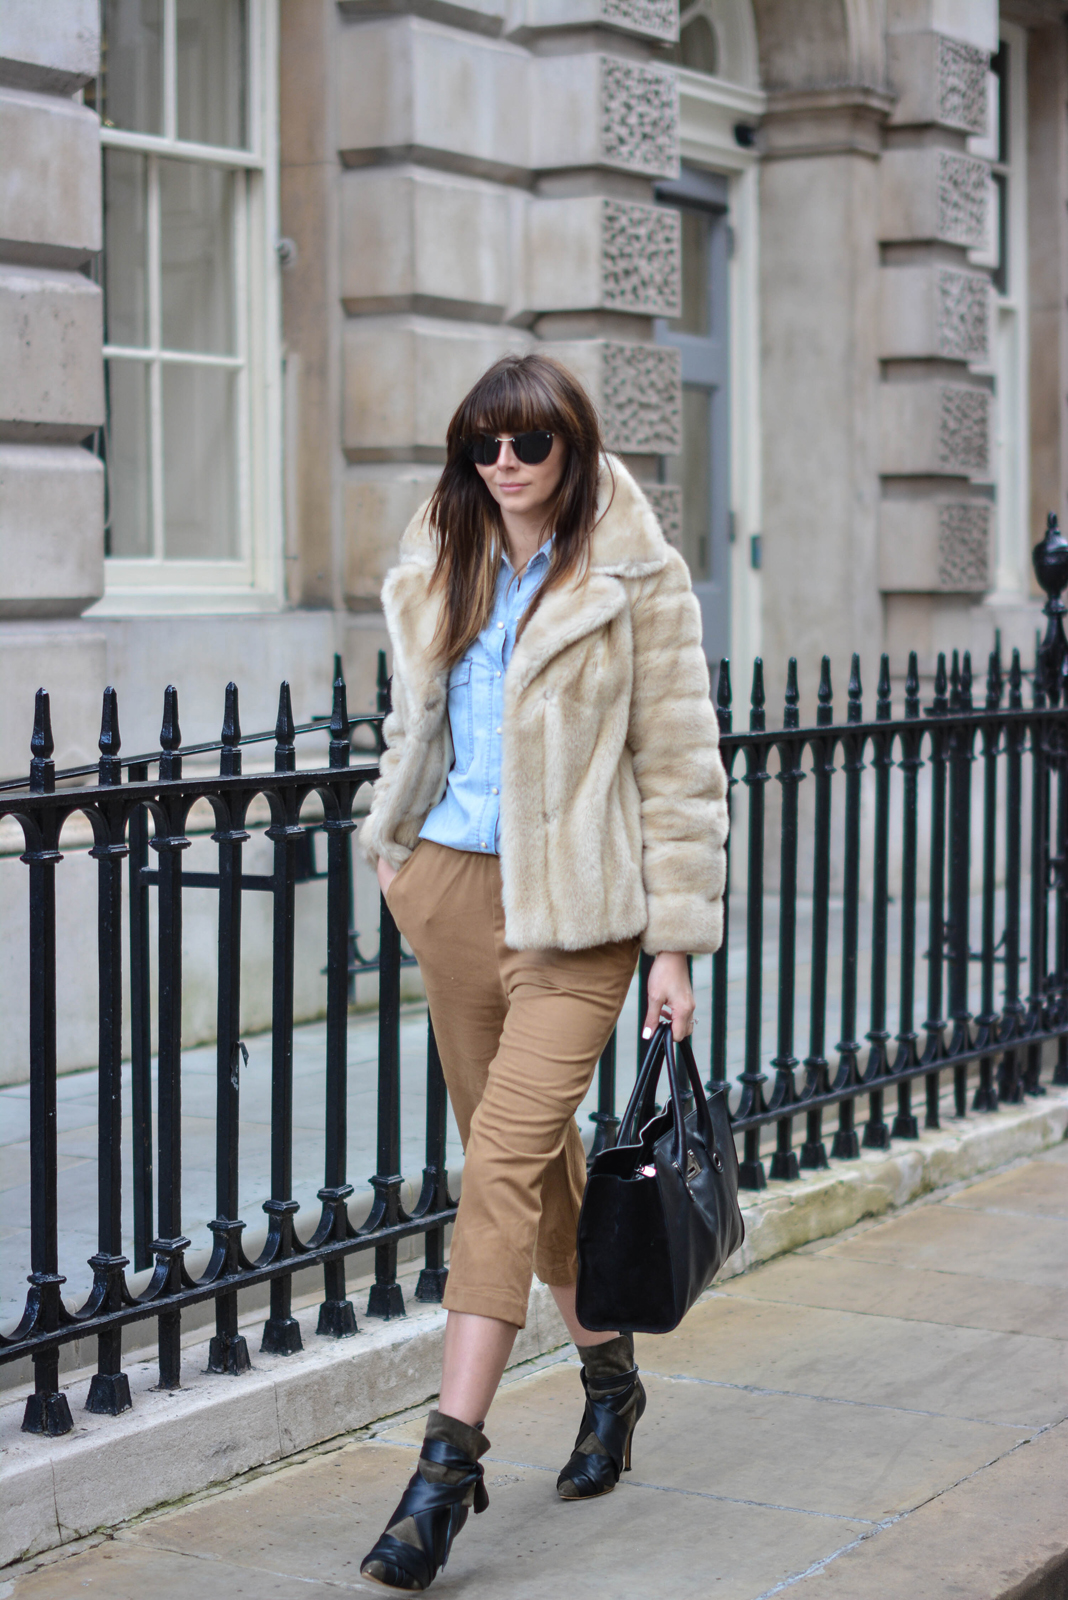 EJSTYLE - Emma Hill, London Fashion Week, LFW AW15, street style, 70's style, Denim shirt, suede culottes, isabel marant boots, jimmy choo bag, vintage fur coat, fashion blogger